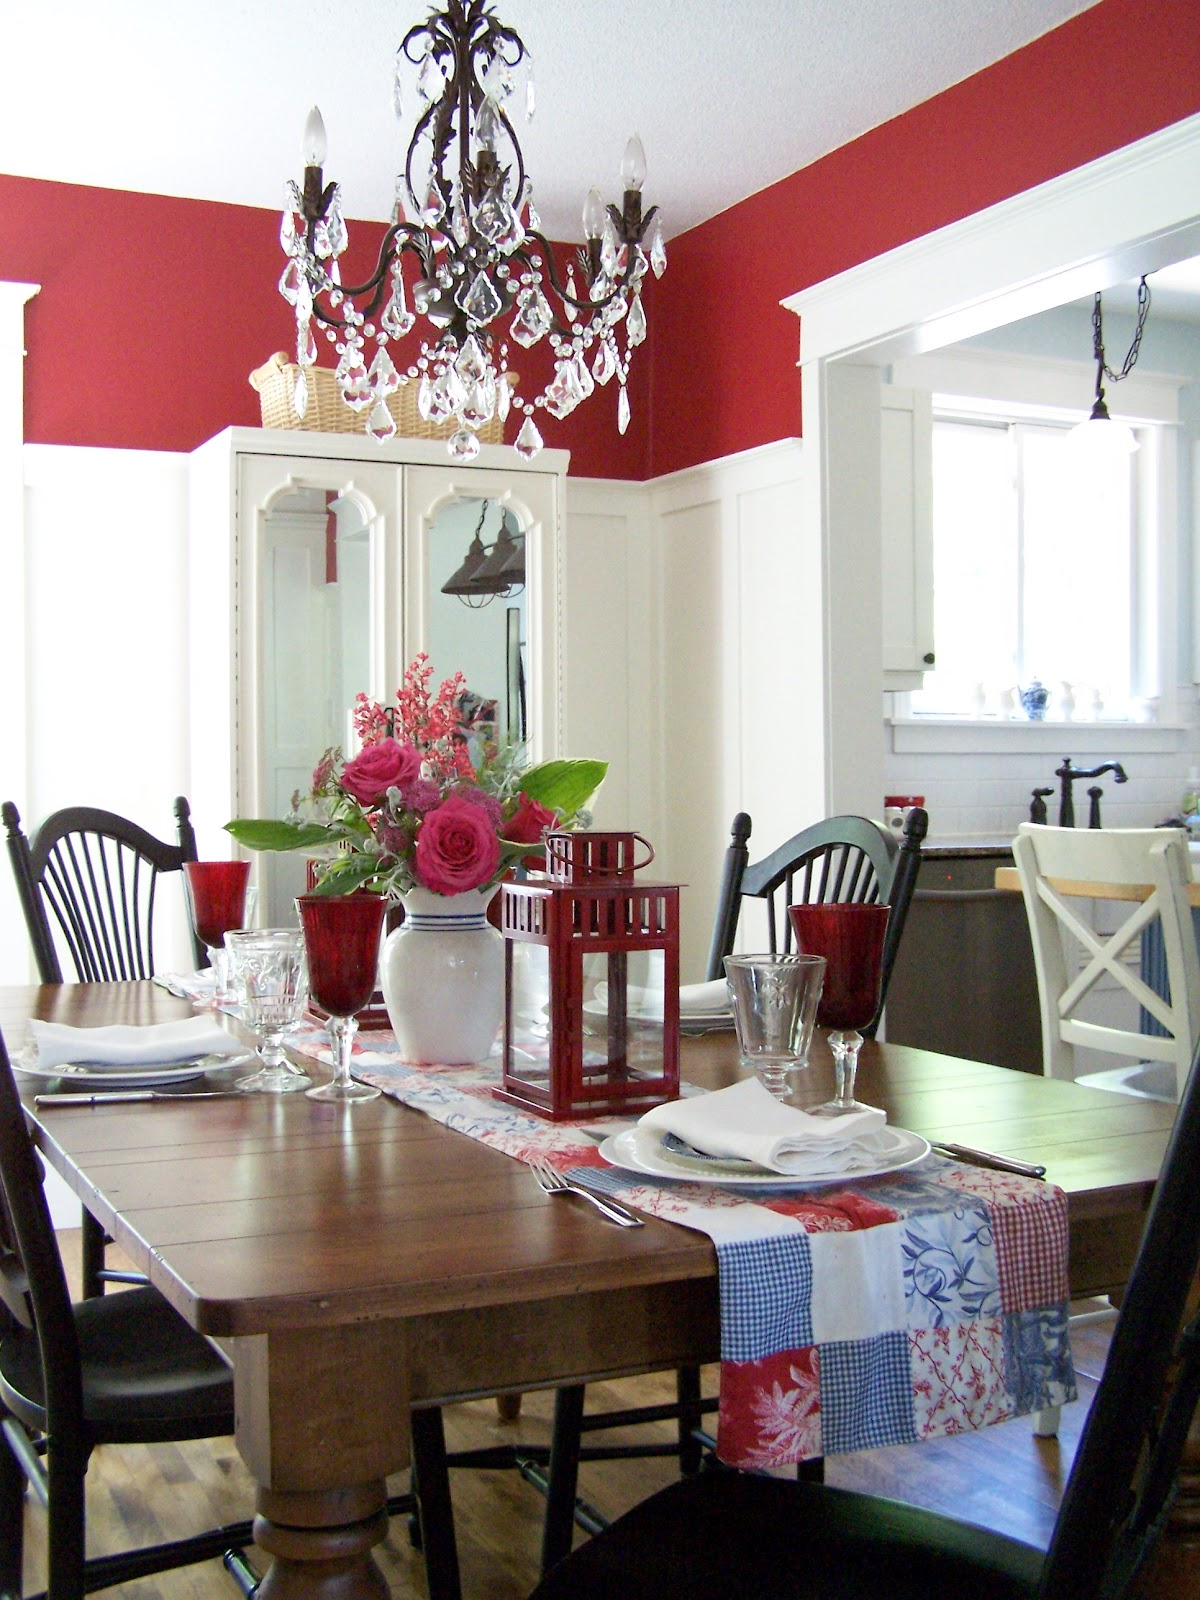 Delorme designs dining room reveal finally for Q significa dining room